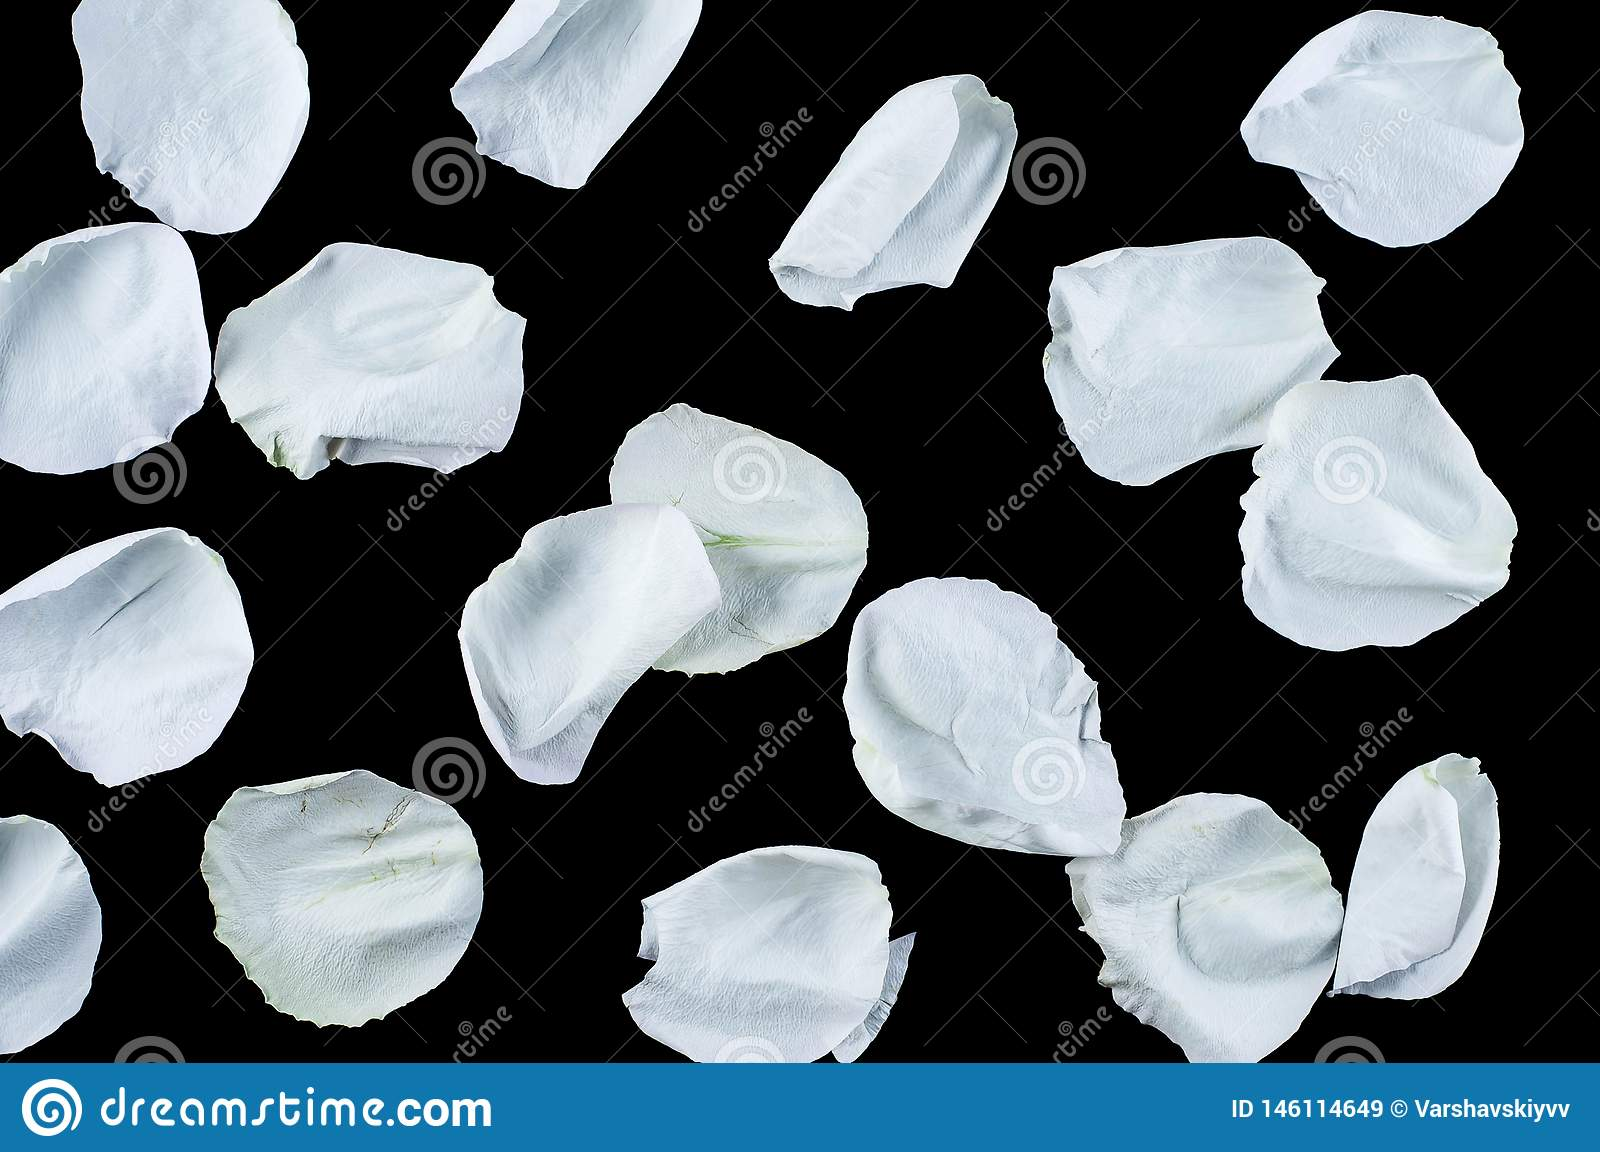 Roses and petals flowers on different backgrounds